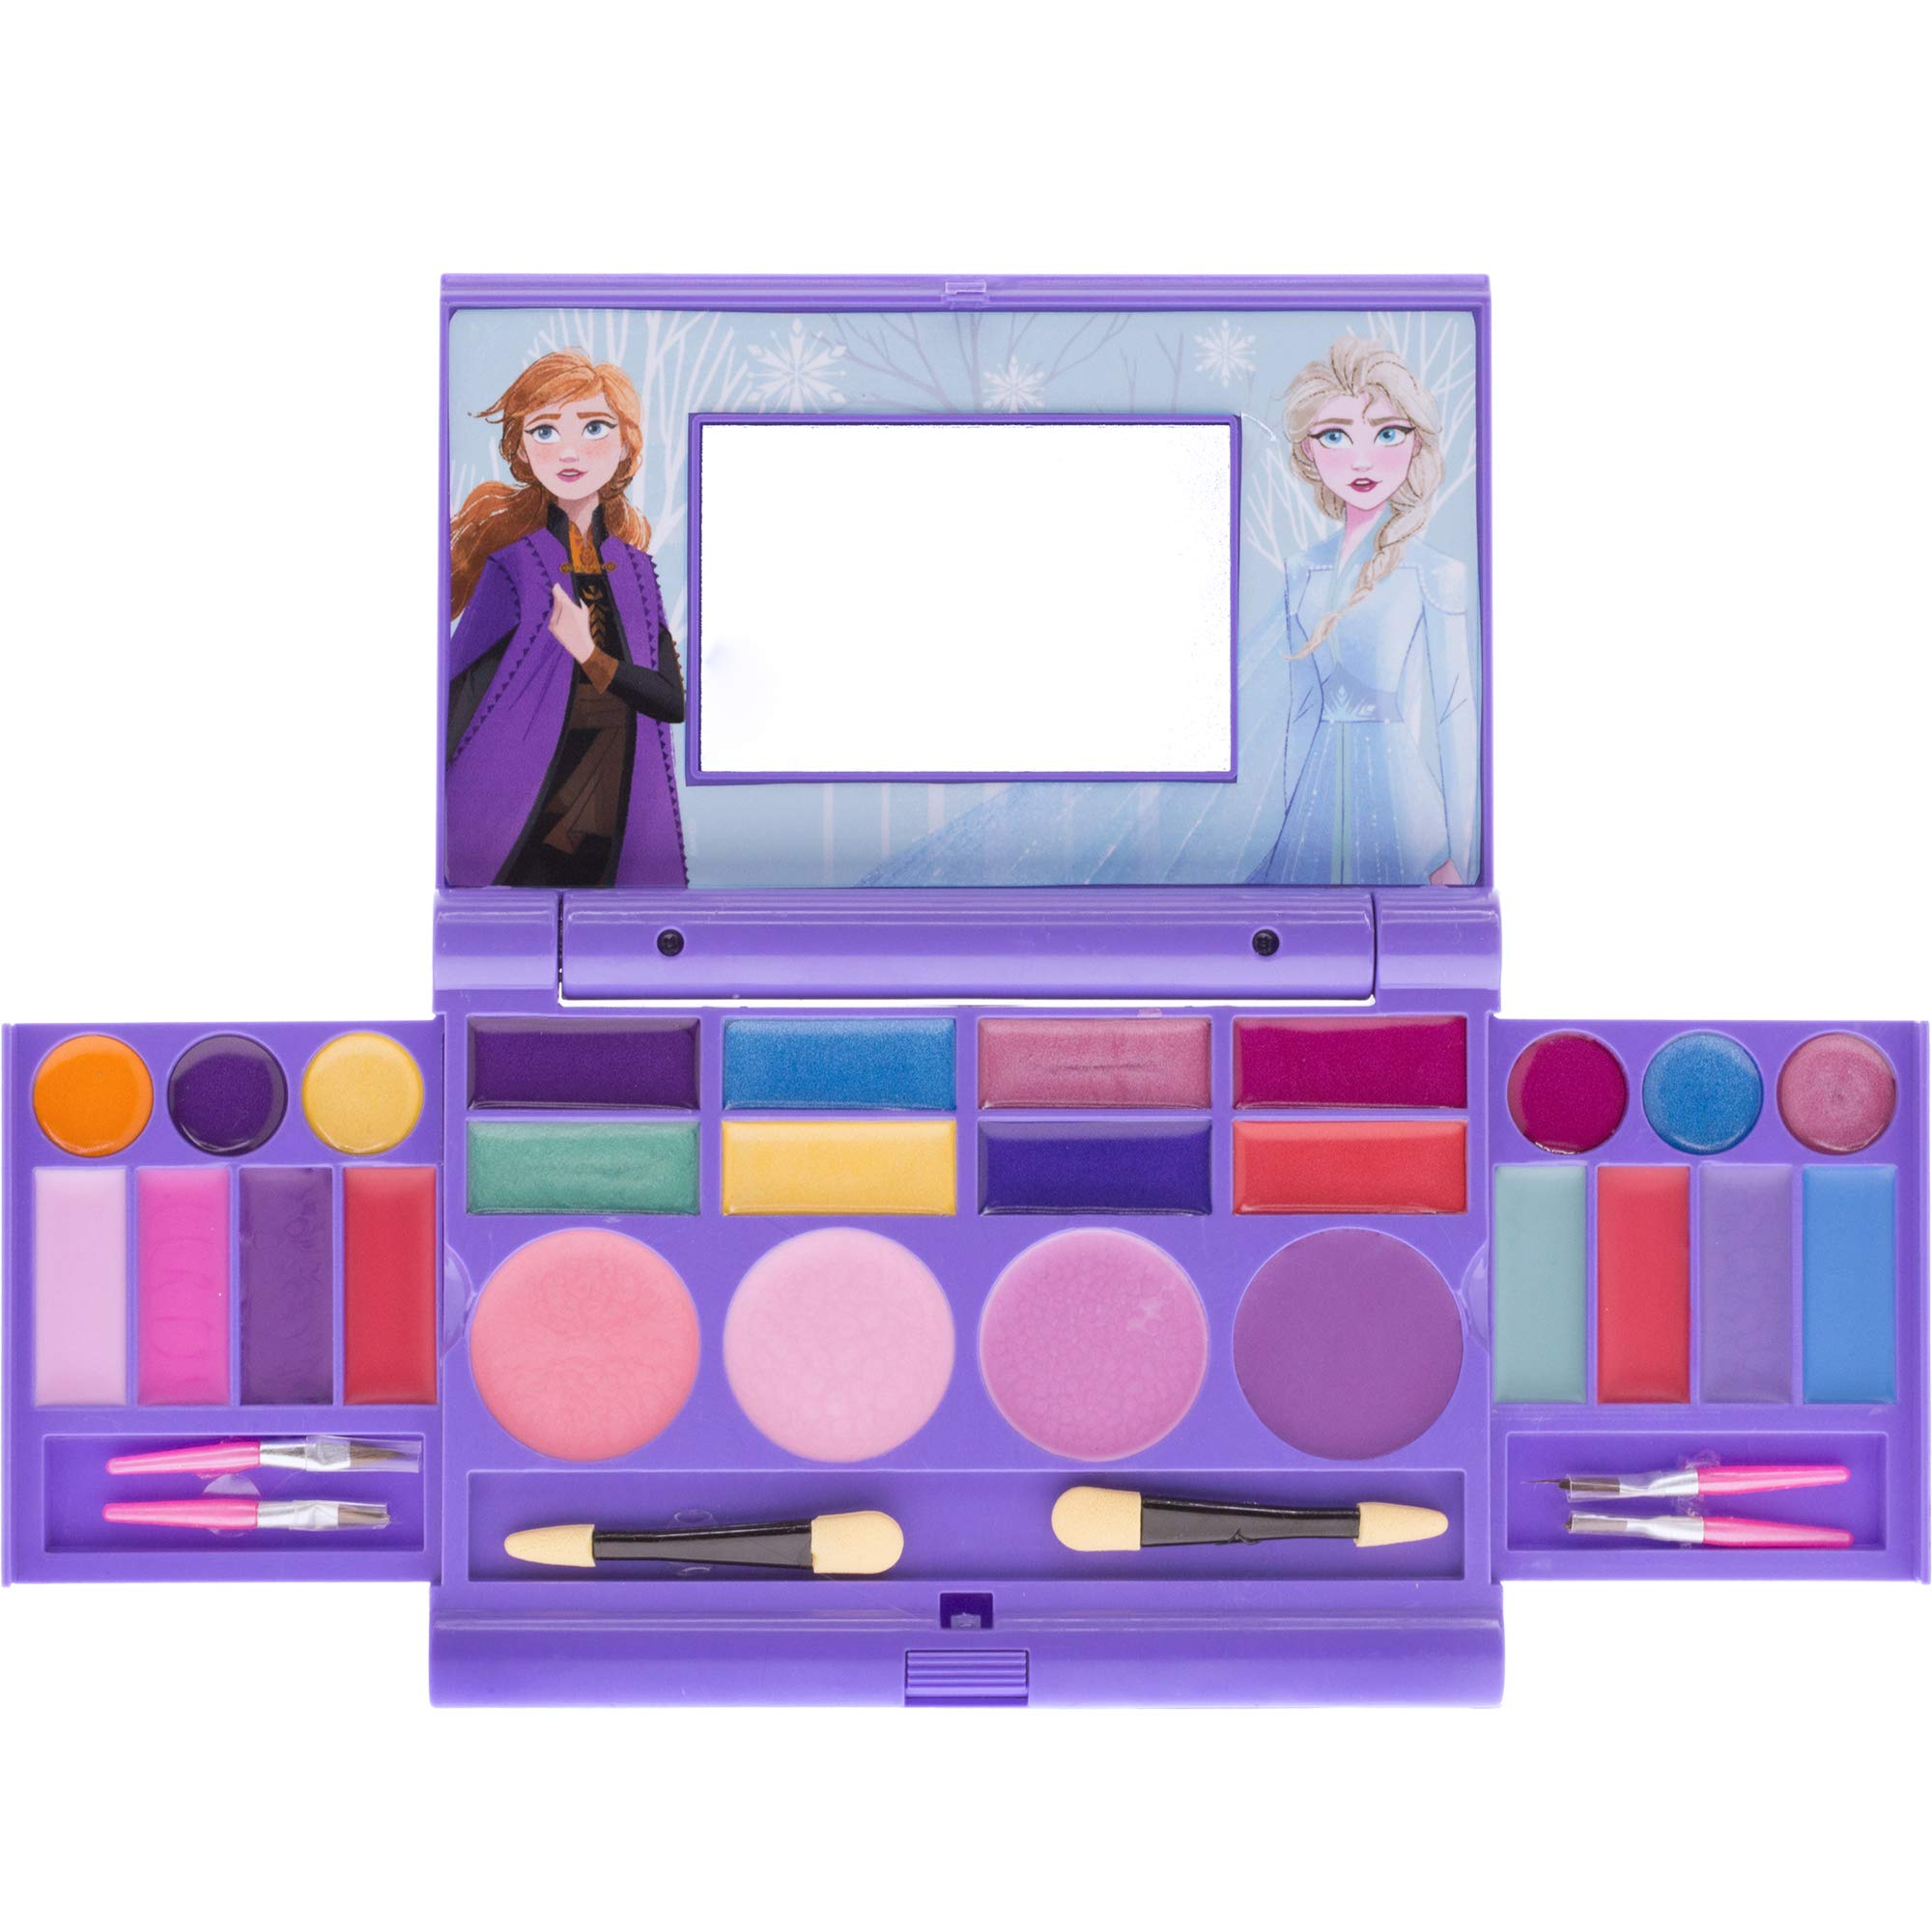 Townley Girl Disney Frozen Elsa and Anna Beauty Makeover Compact with Mirror for Girls, Including 6 Lip Glosses, 4 Blushes, 8 Eye Shadow Creams and 8 Eye Shadow Powders, Ages 3 and up by Townley Girl